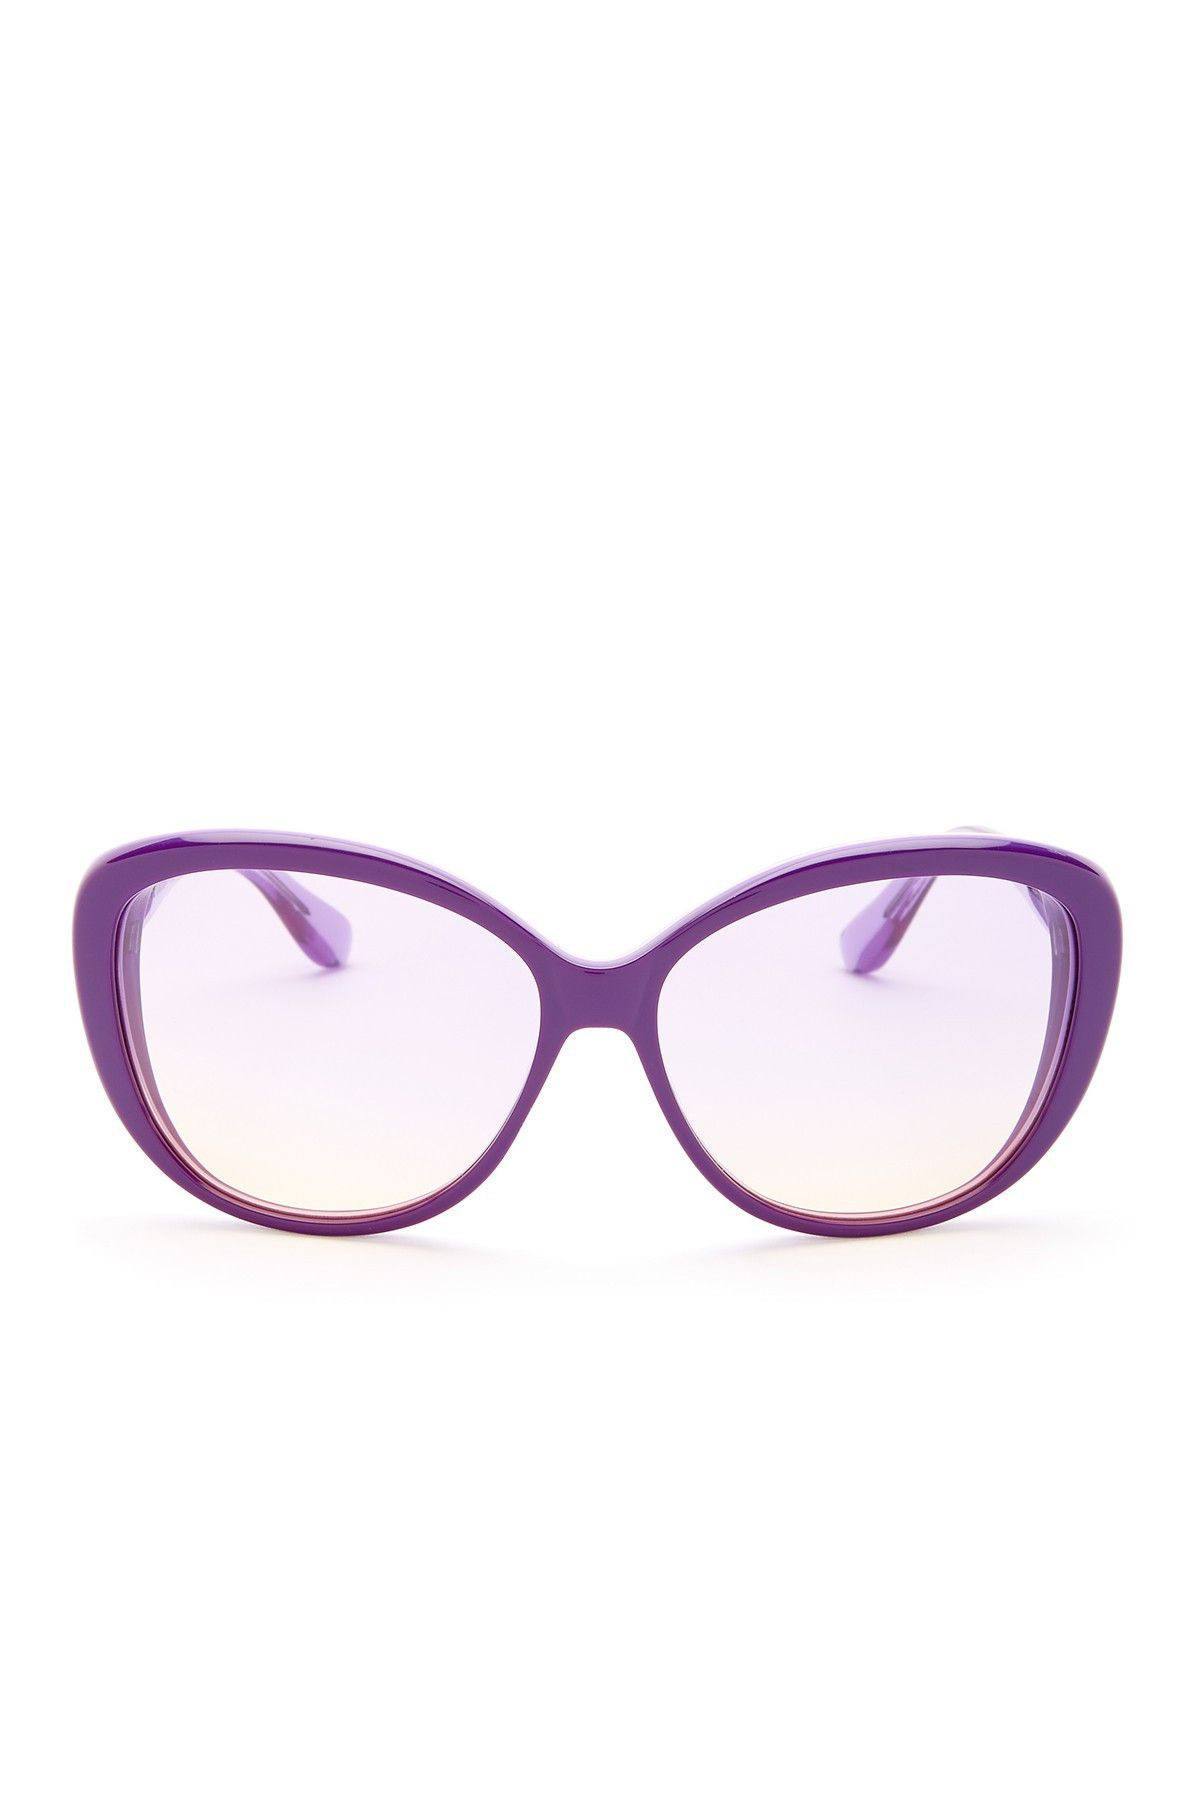 Retro cat eye sunglasses to complete that summer outfit.